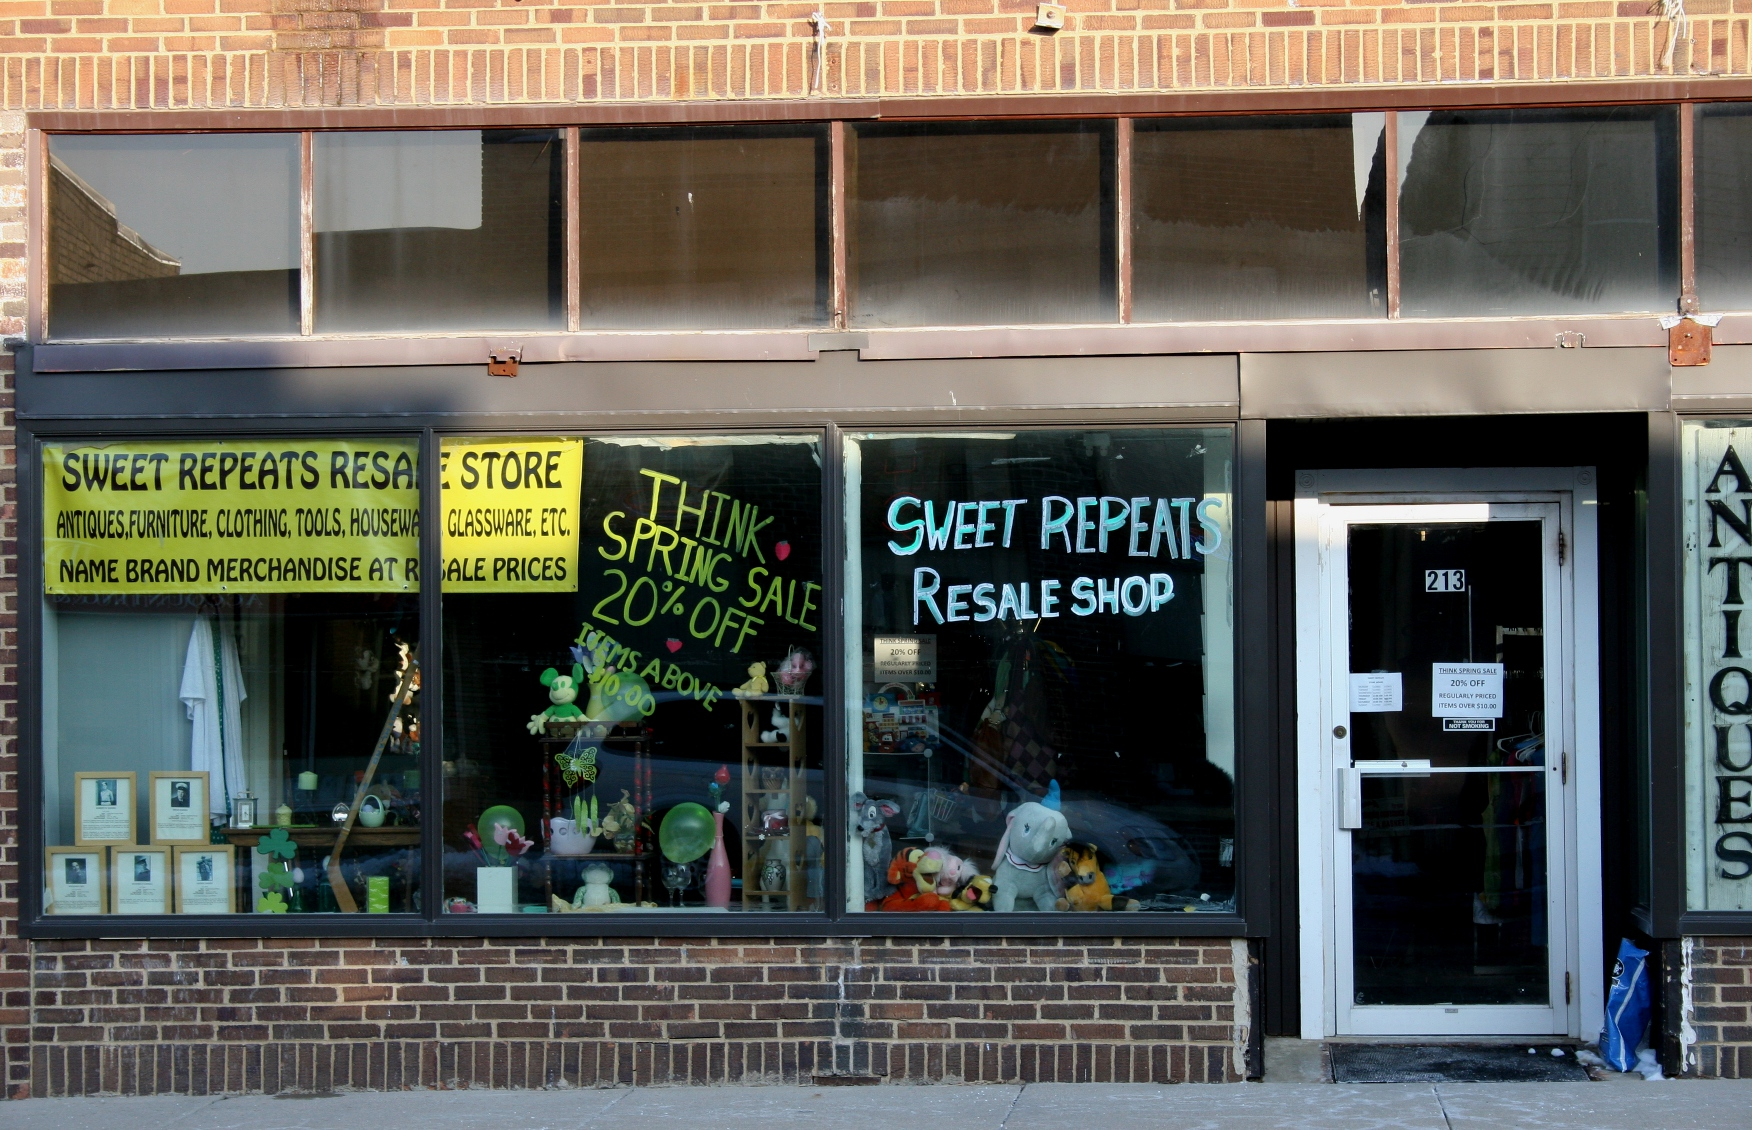 In the lower left corne you can see veterans' tributes in the window of Sweet Repeats Resale Shop.